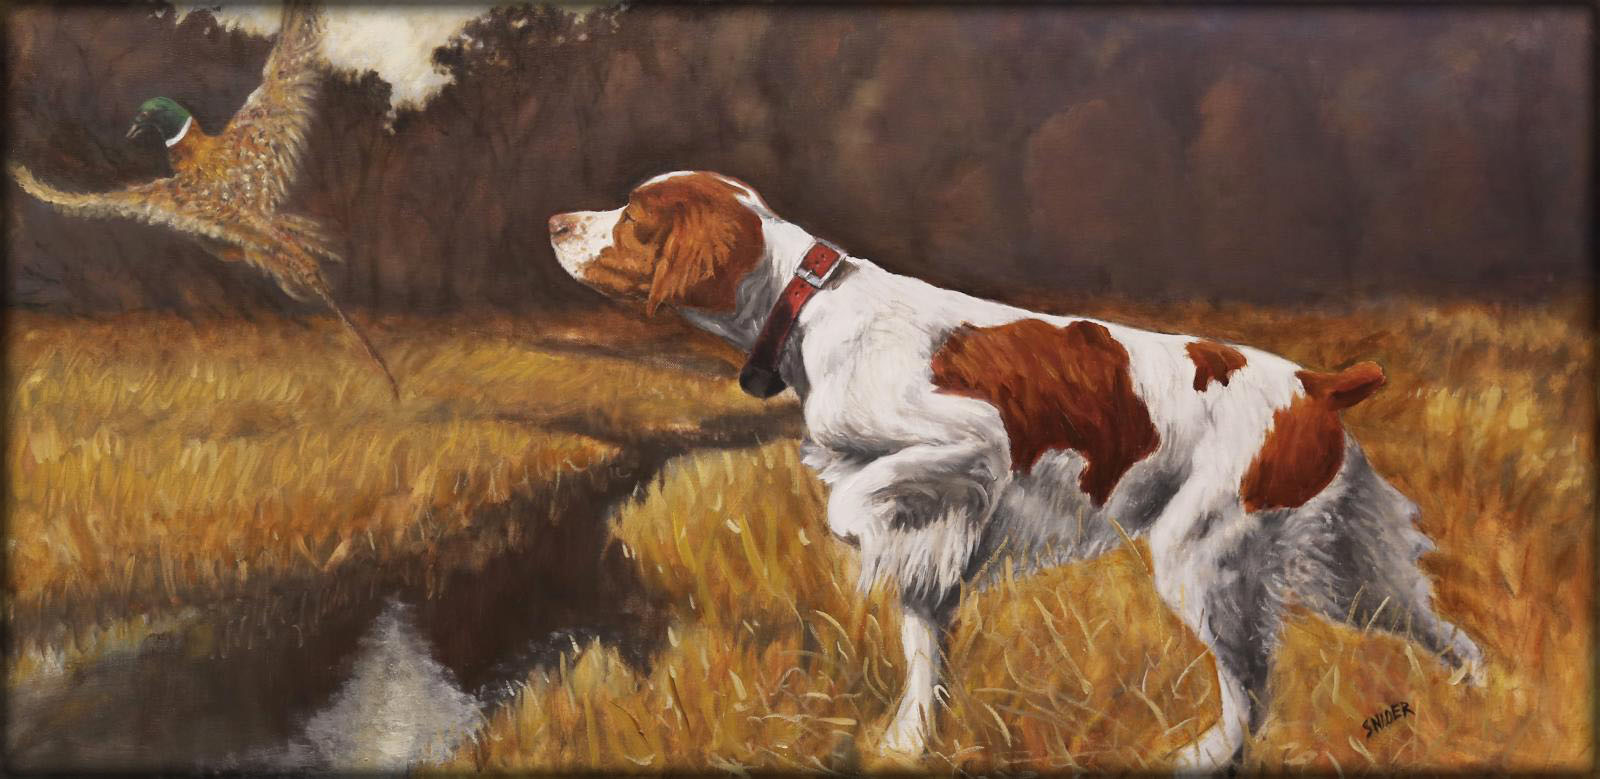 Oil portrait of Brittany on point and pheasant in flight by artist Larry Snider